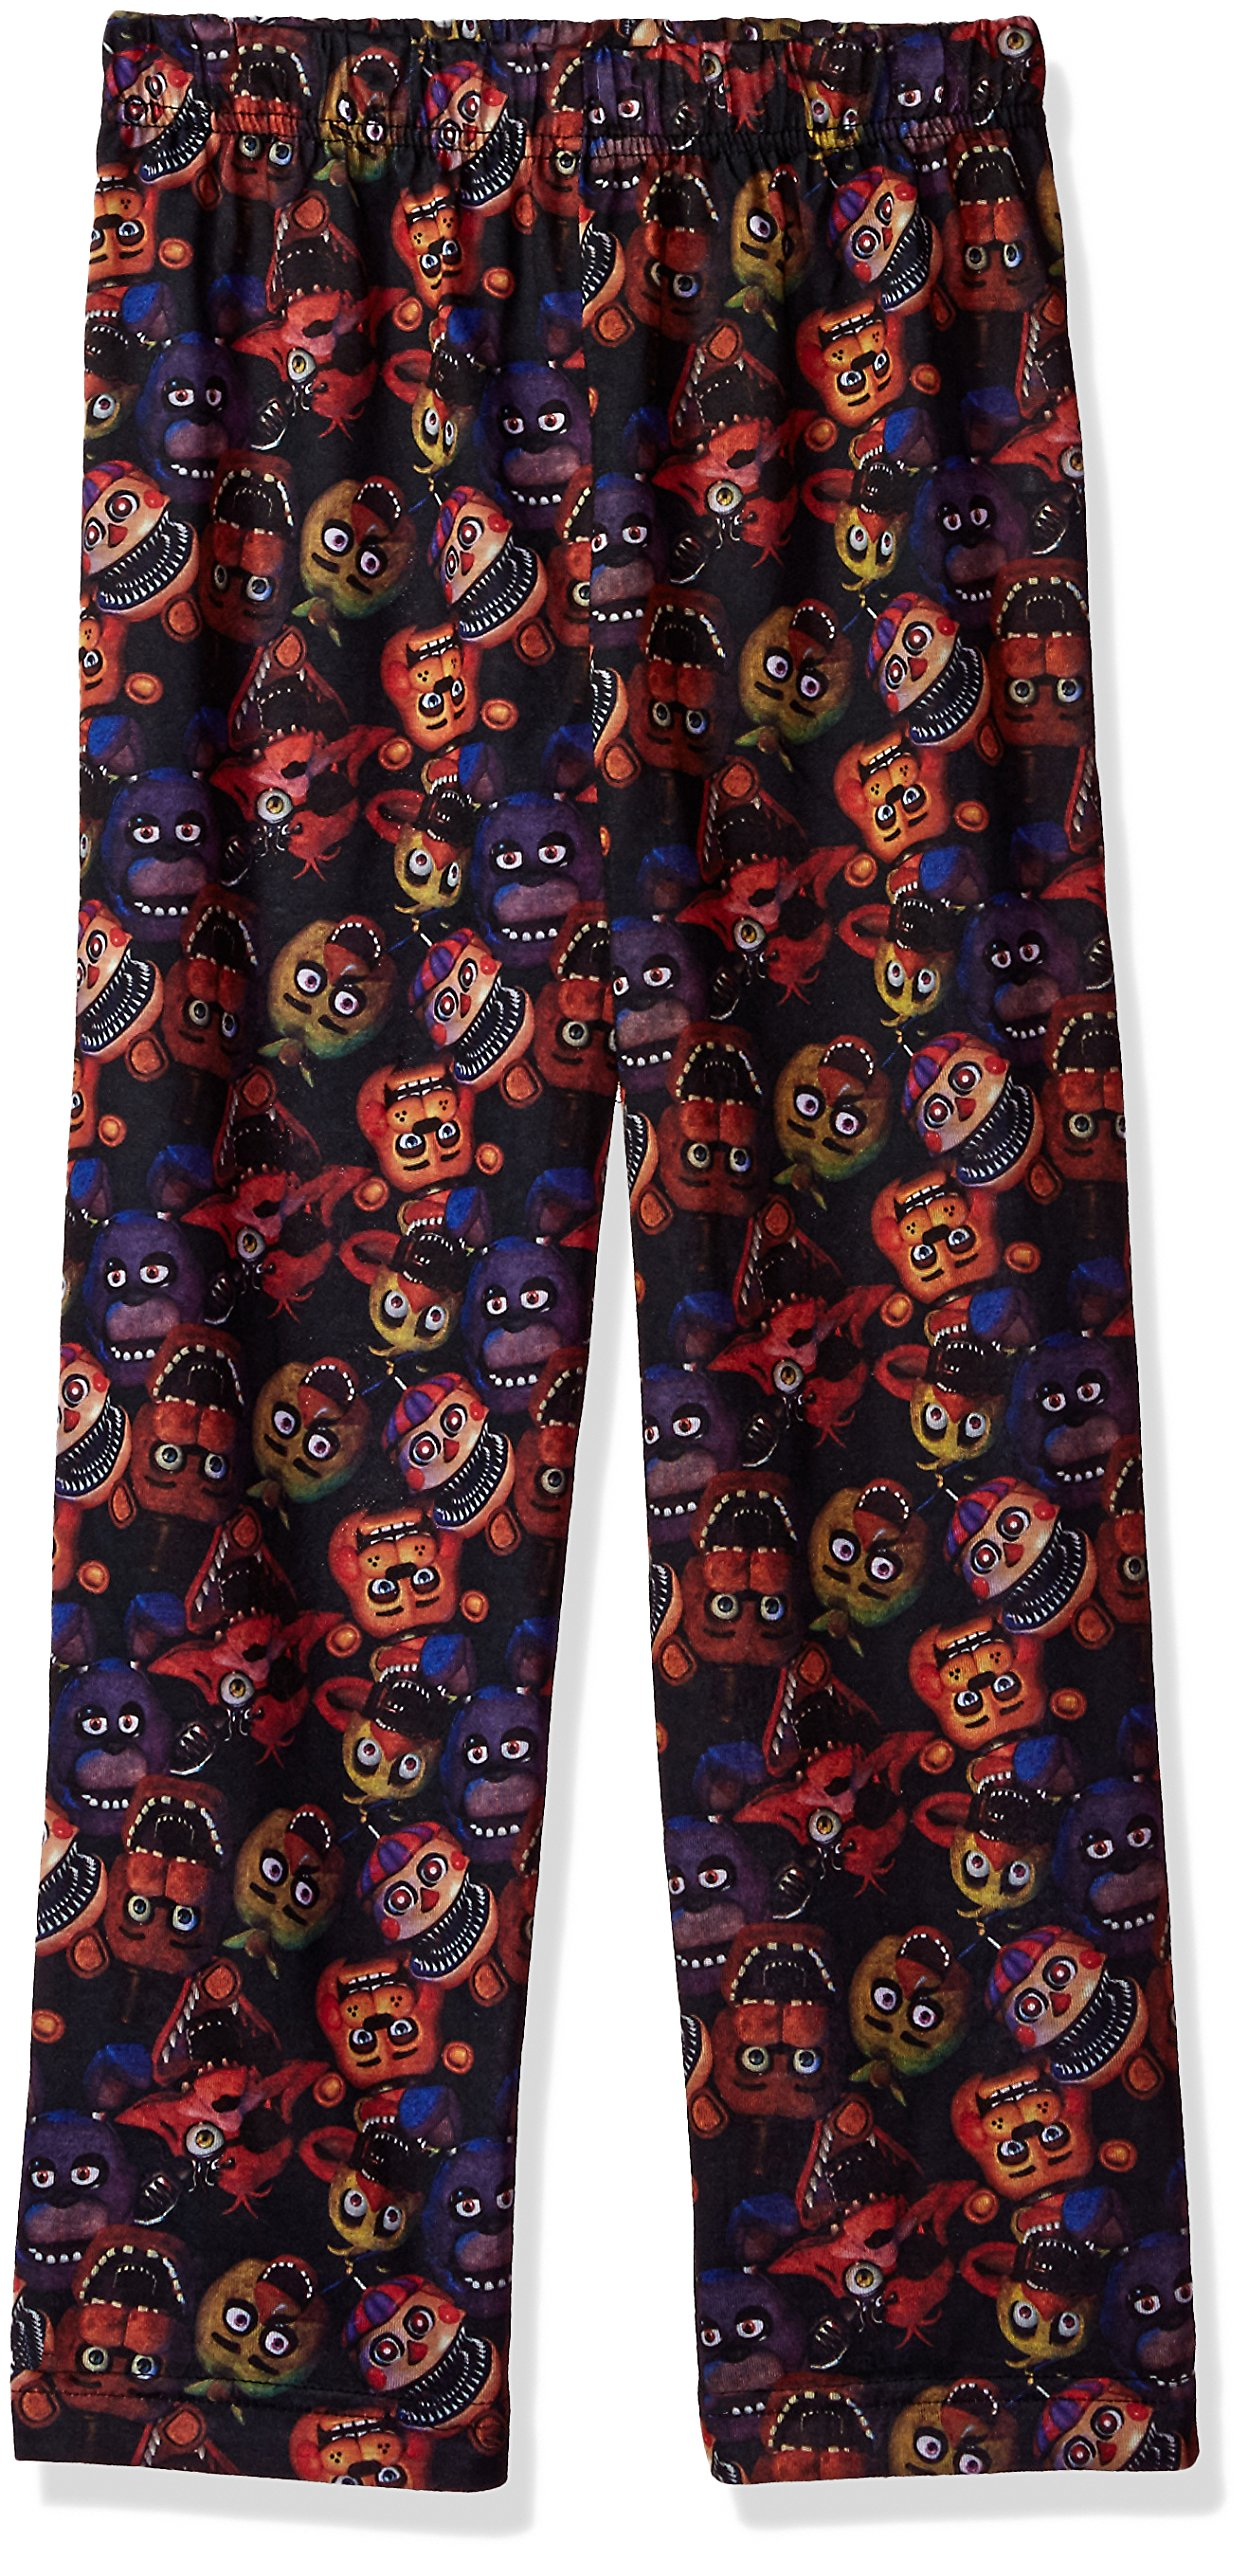 Five Nights at Freddy's 'Bear Pizza Fazbear Video Game' Pajama Lounge Pant, Black, 10/12